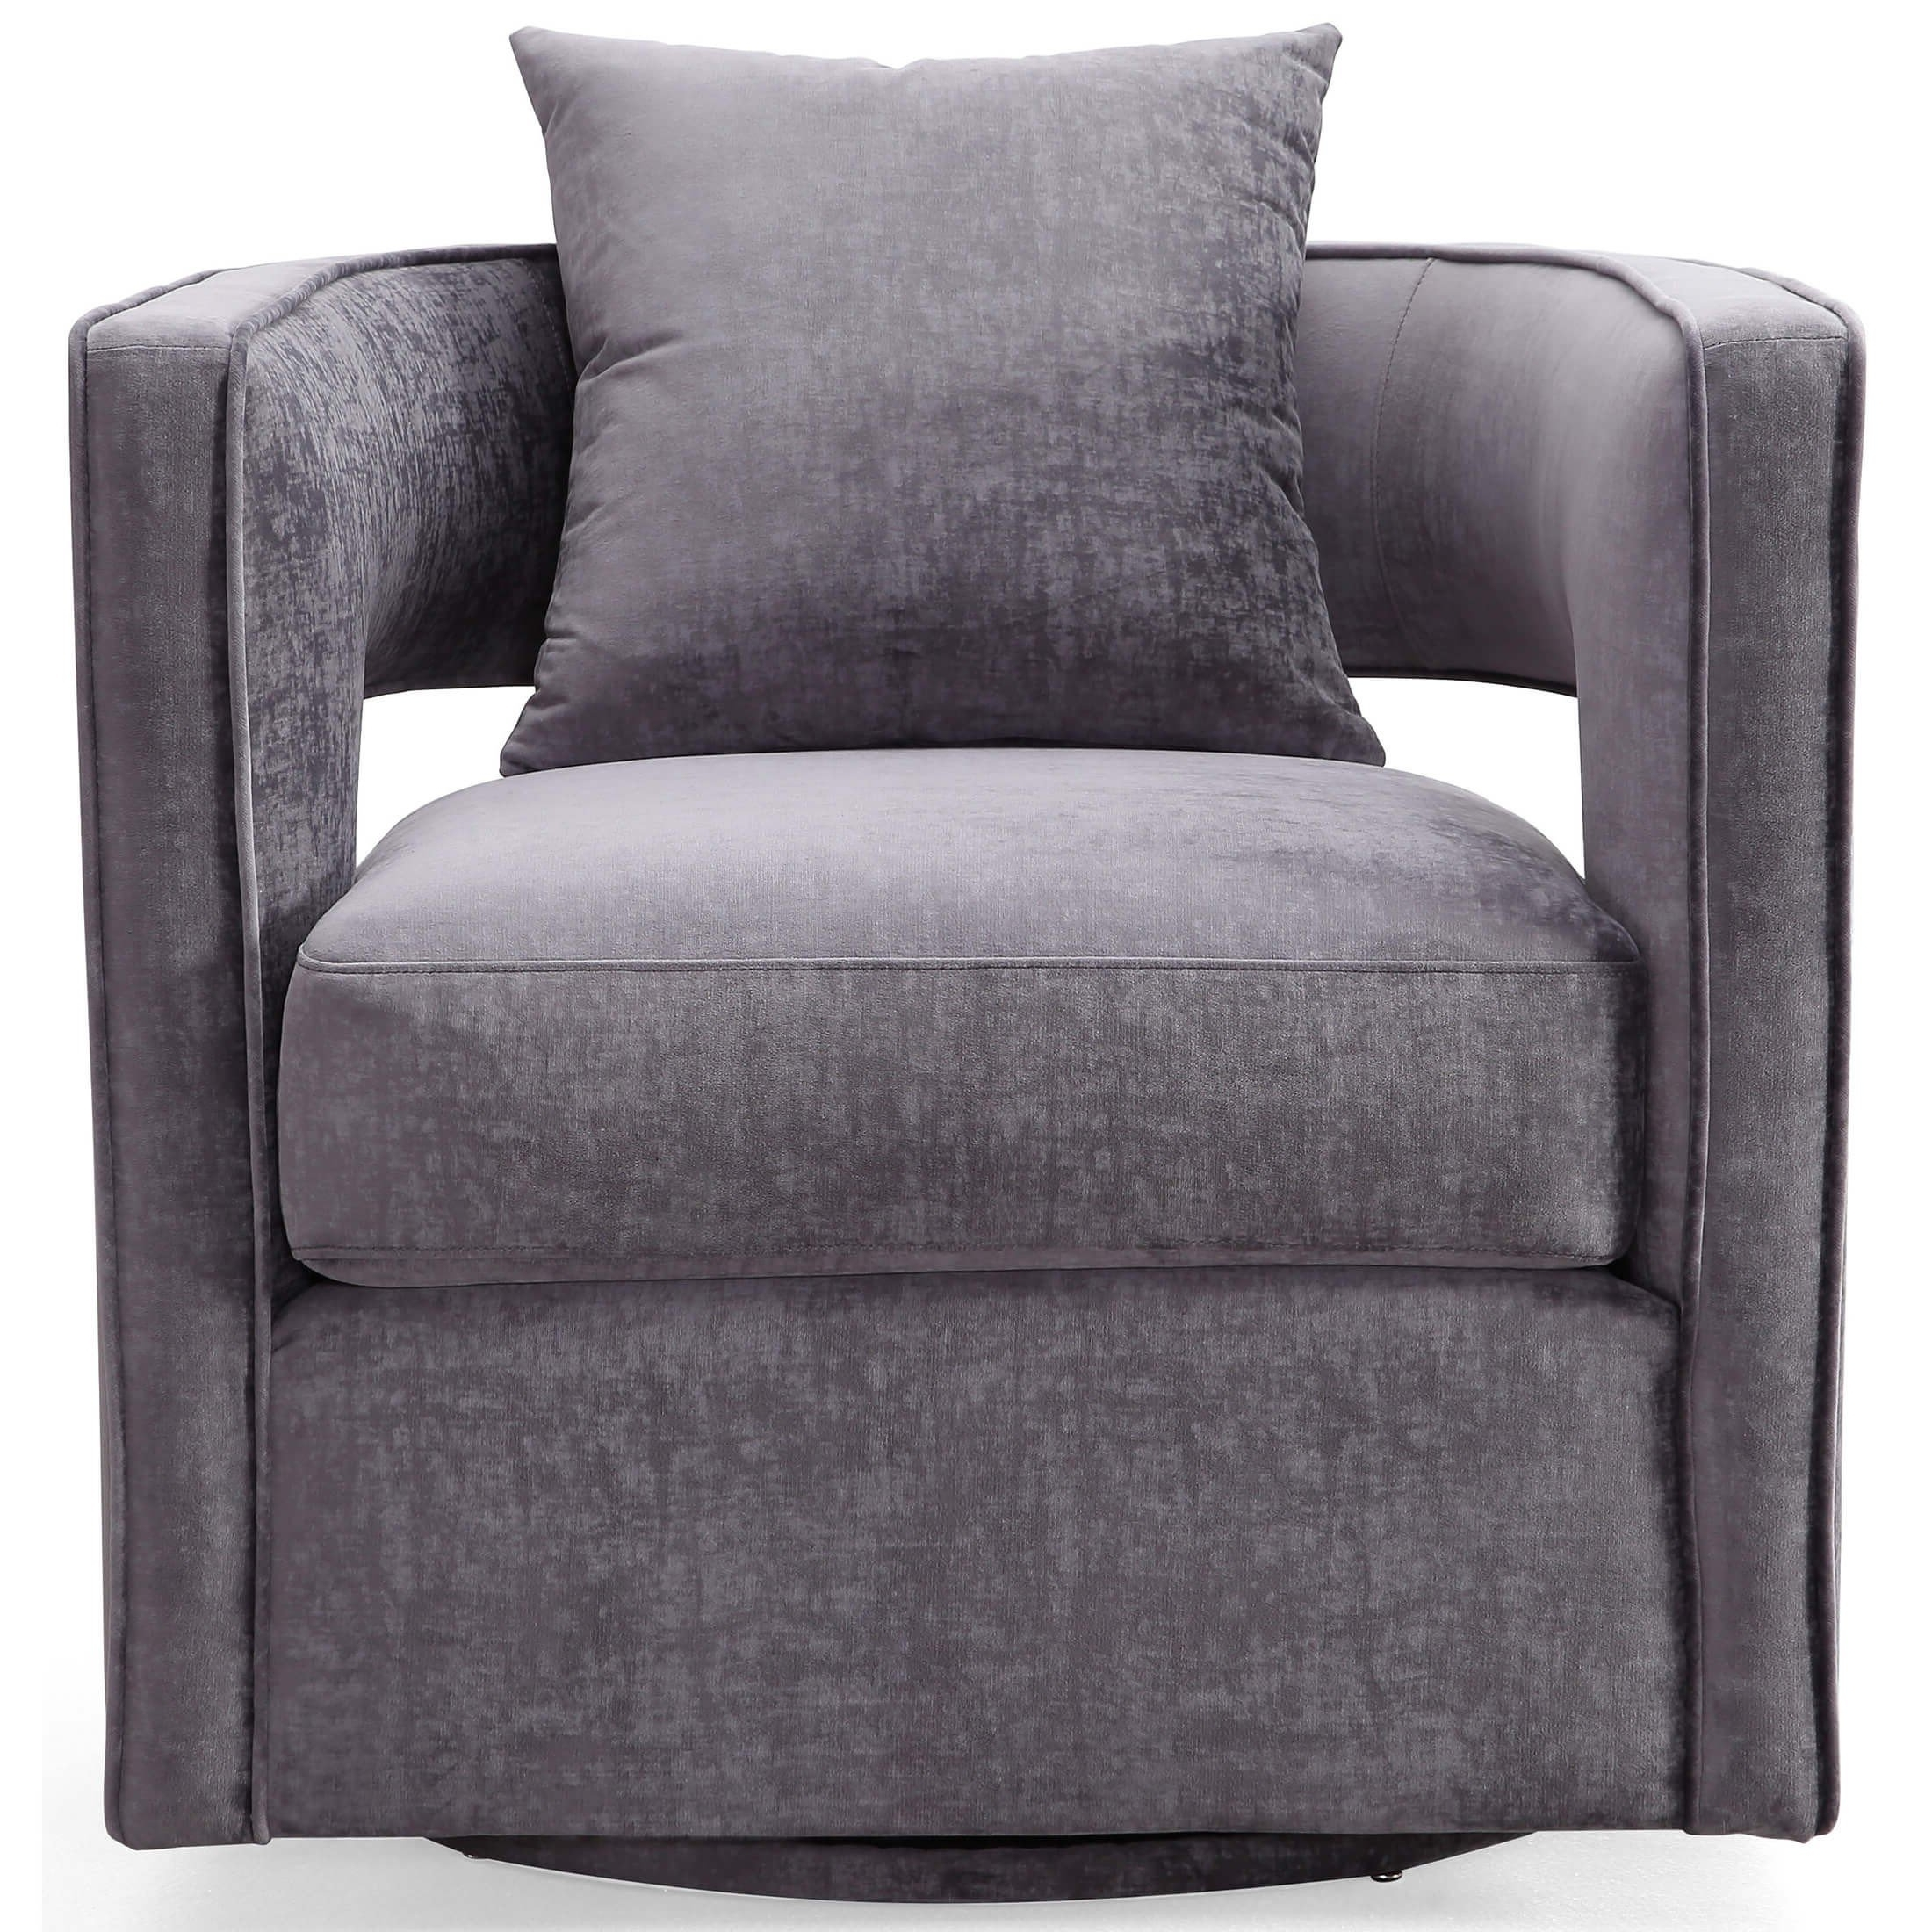 Picture 31 Of 35 – Oversized Round Chair Inspirational Sofas Pertaining To Well Known Swivel Sofa Chairs (View 3 of 20)